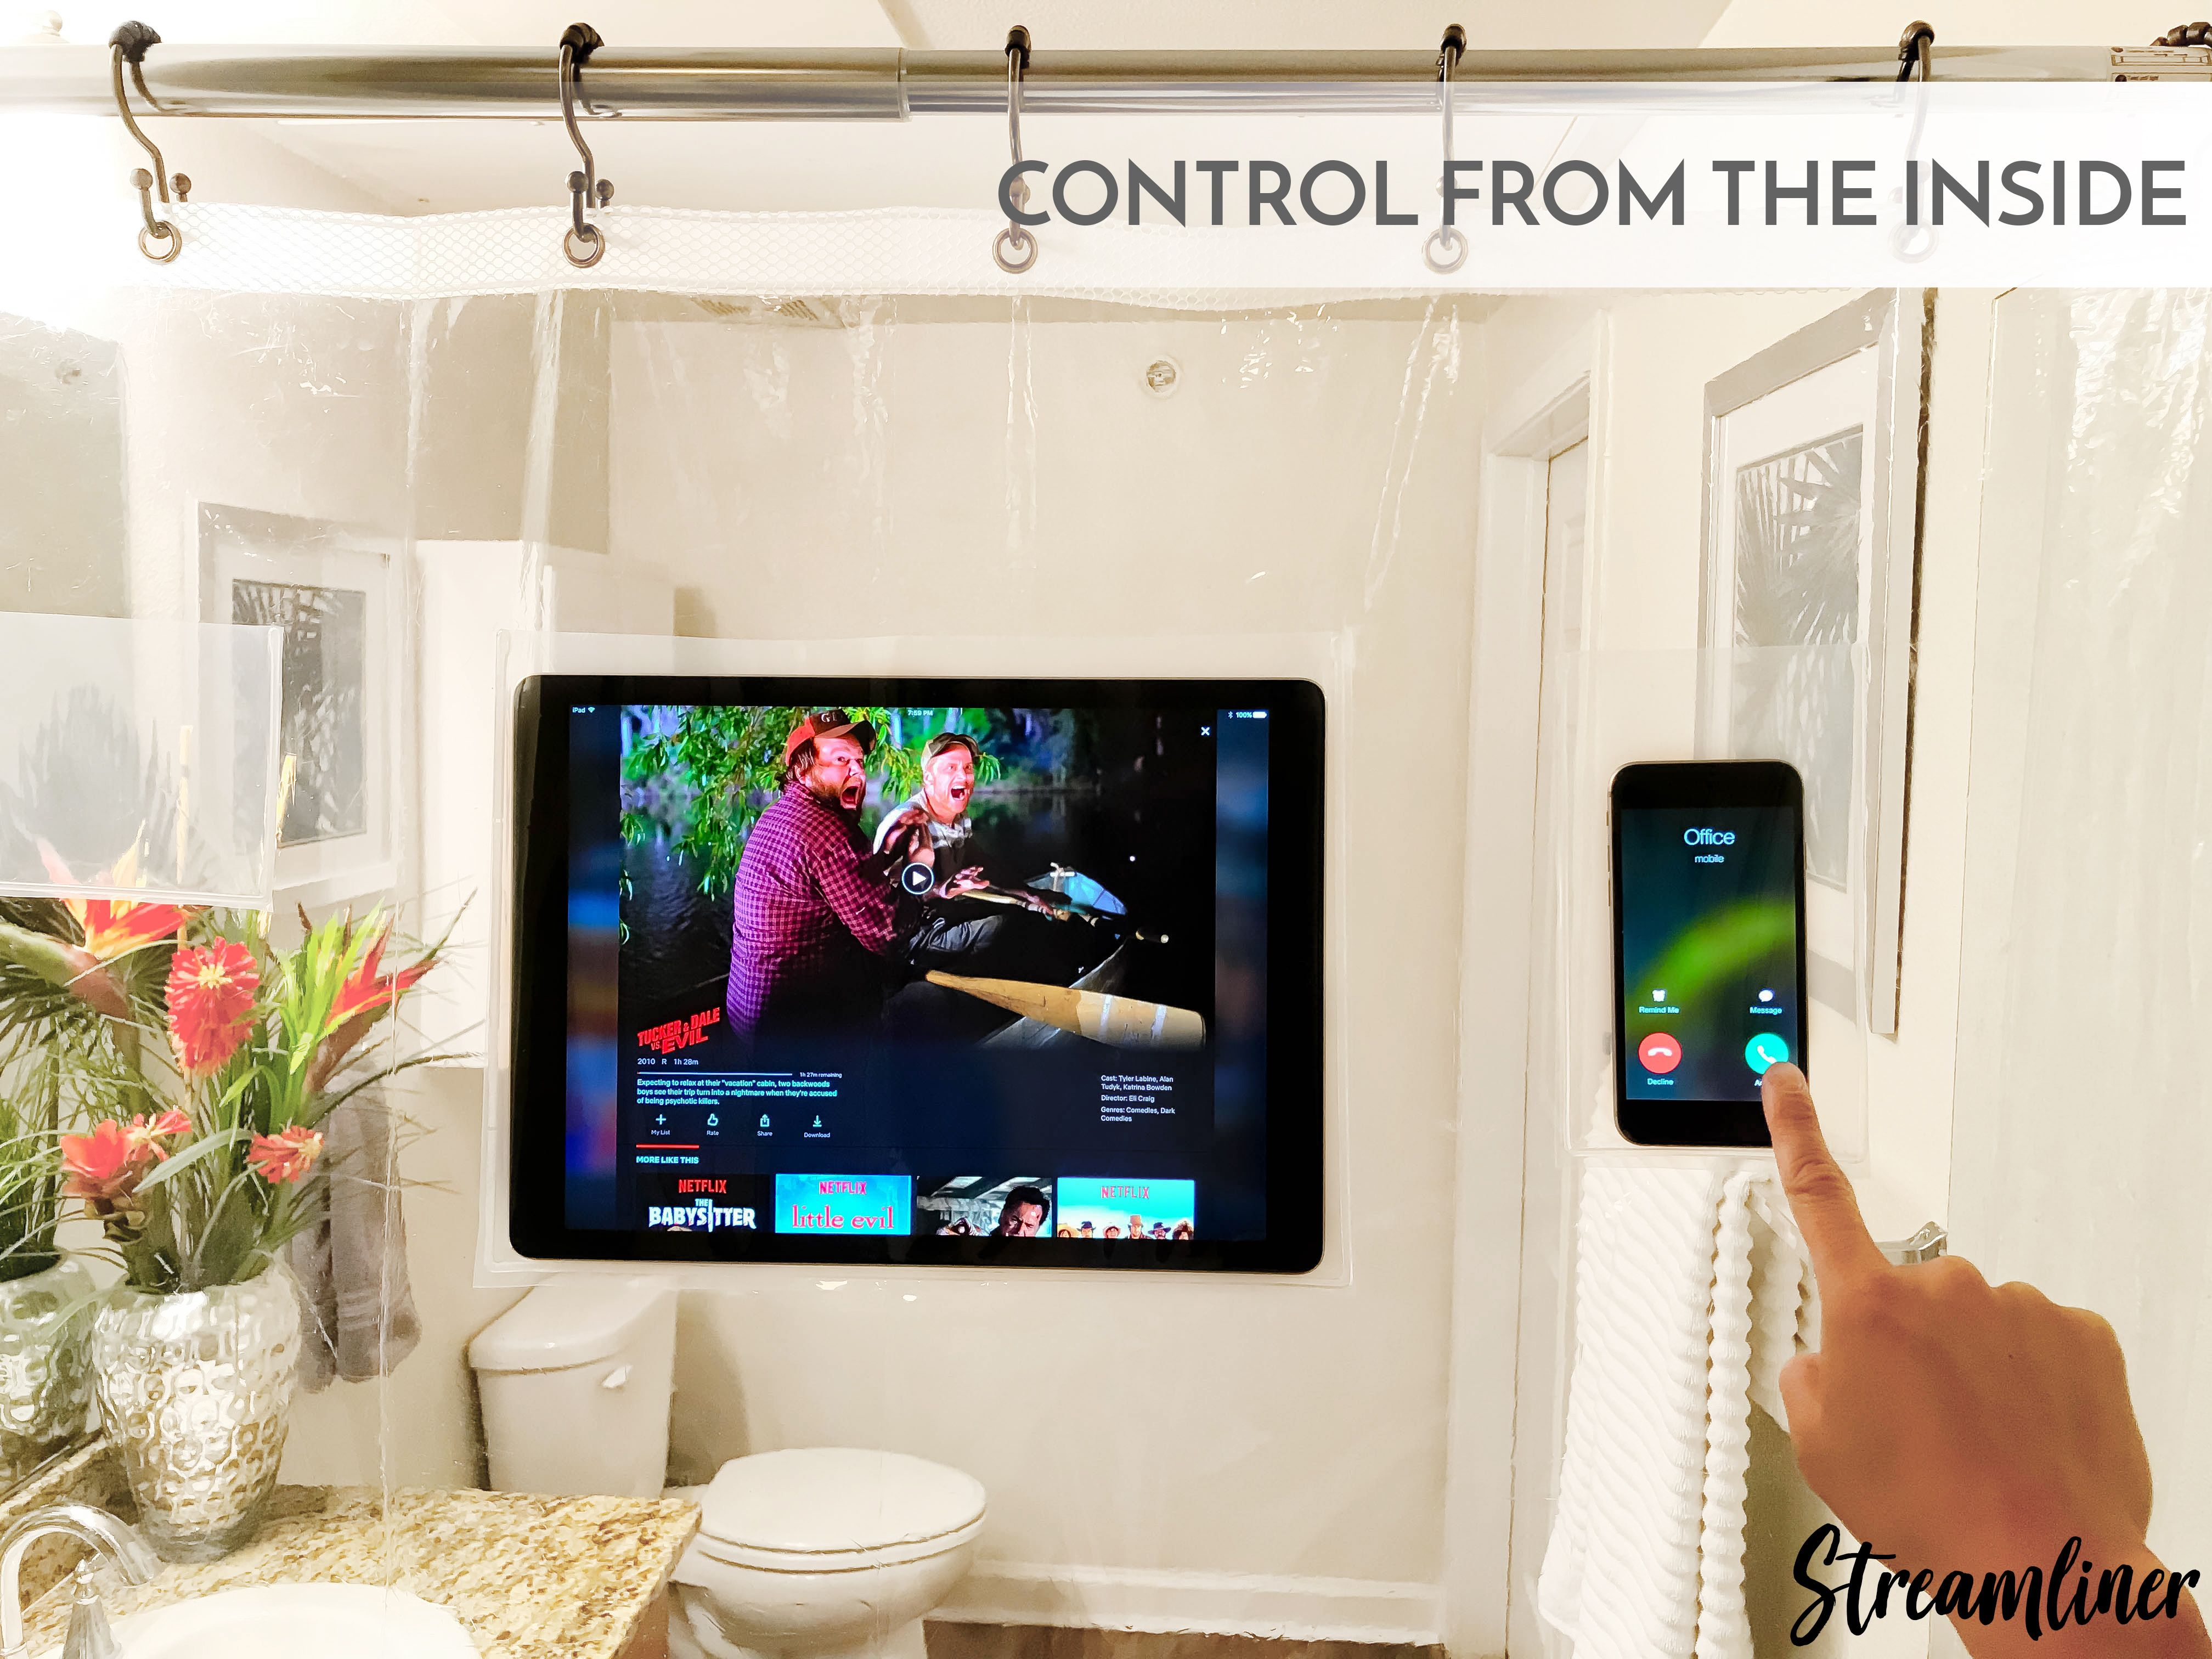 Streamliner Allows You To Touch Watch Listen To Your Phone Or Tablet While In The Shower Or Bath Without Putting Your Elect Tablet Baby Monitor Smart Device